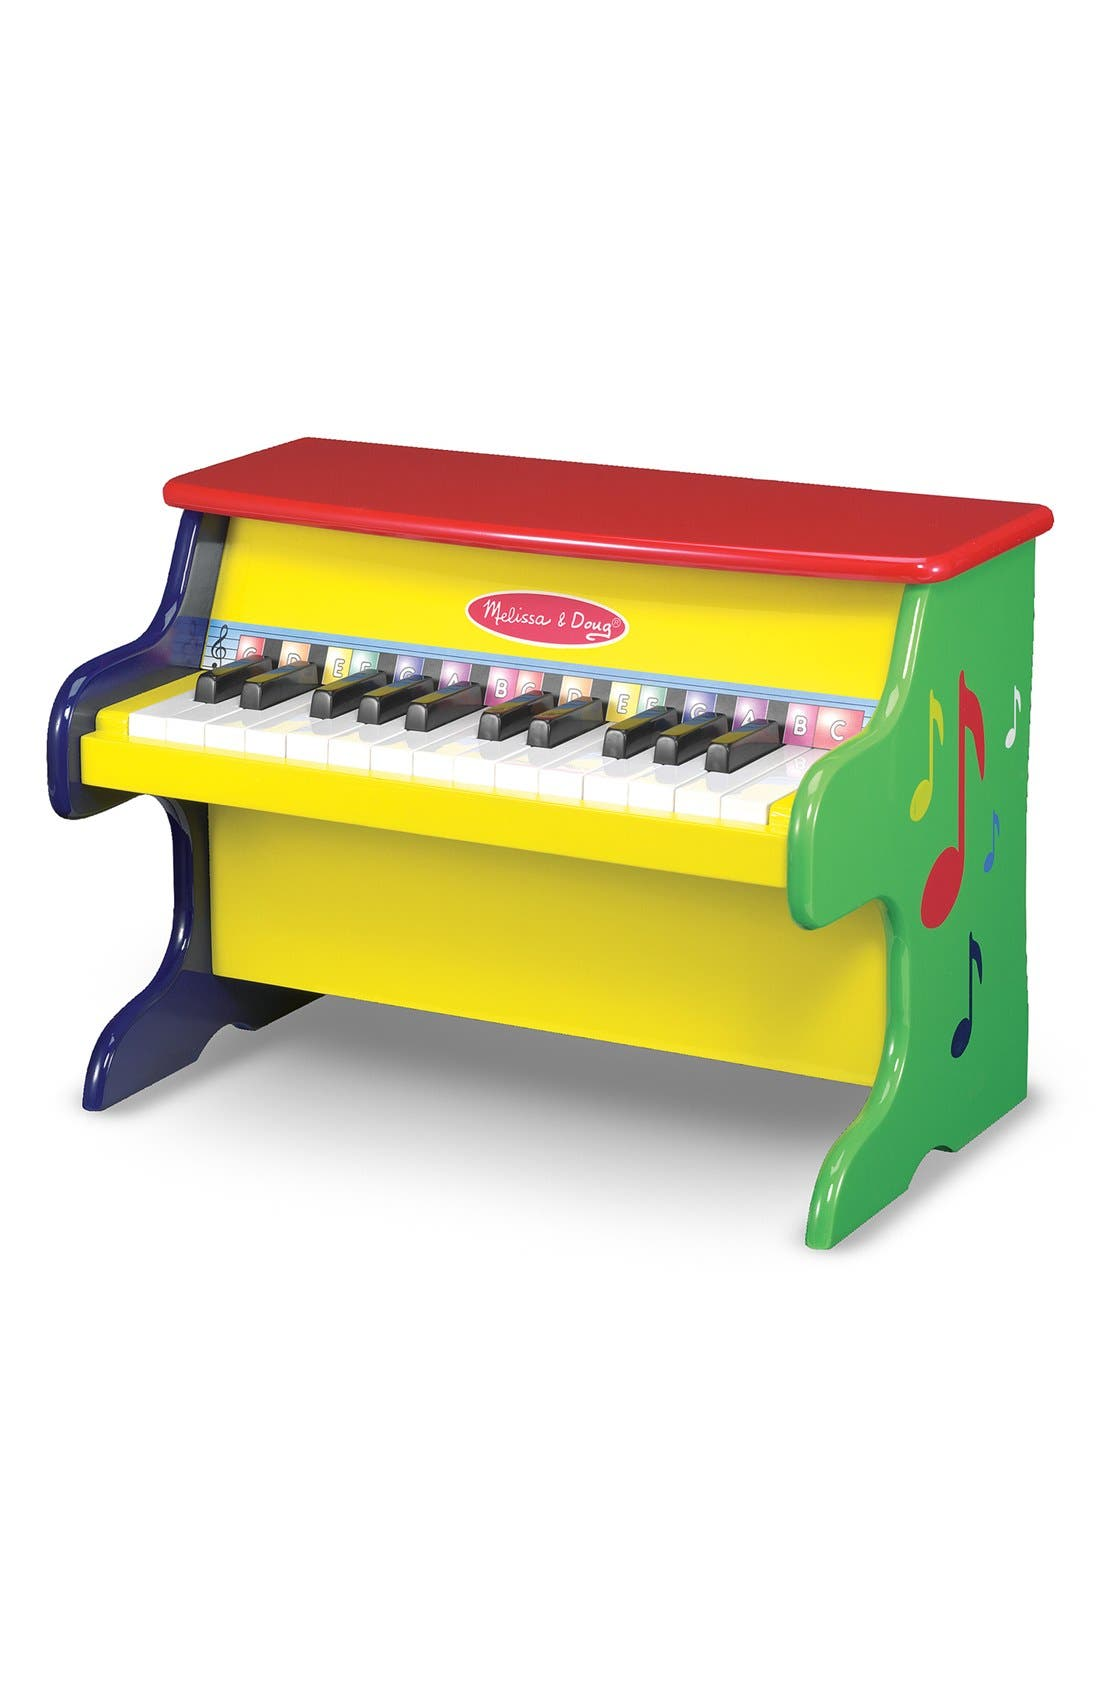 'Learn-to-Play' Personalized Piano,                             Main thumbnail 1, color,                             700